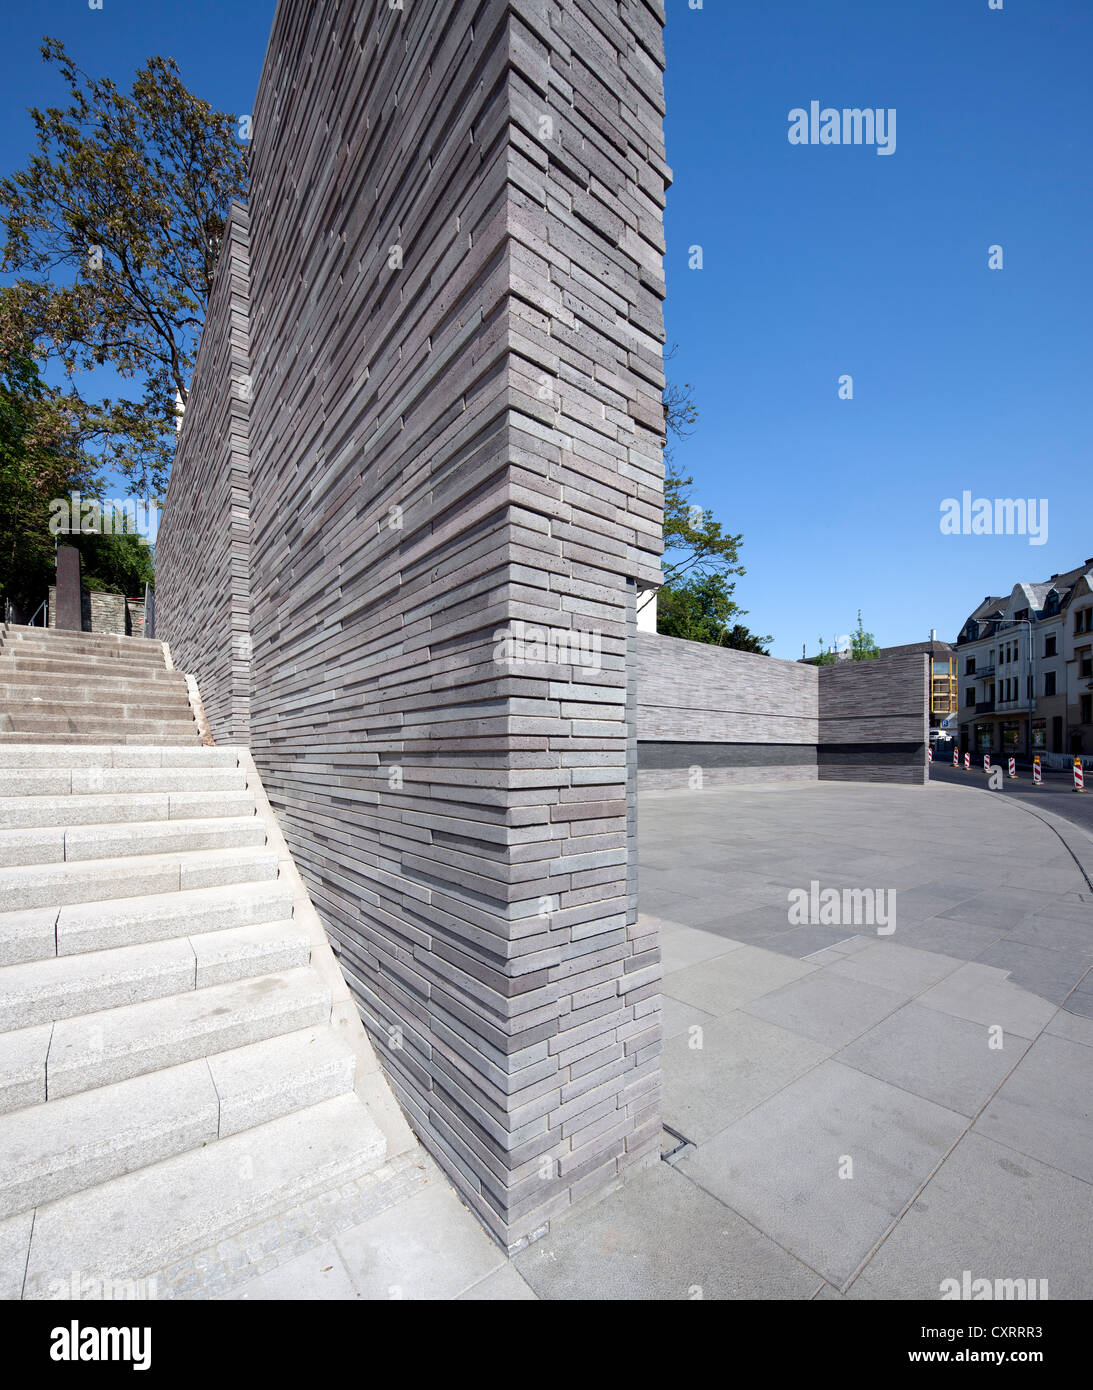 Memorial to the Murdered Jews of Wiesbaden, Old Synagogue, Wiesbaden, Hesse, Germany, Europe, PublicGround - Stock Image